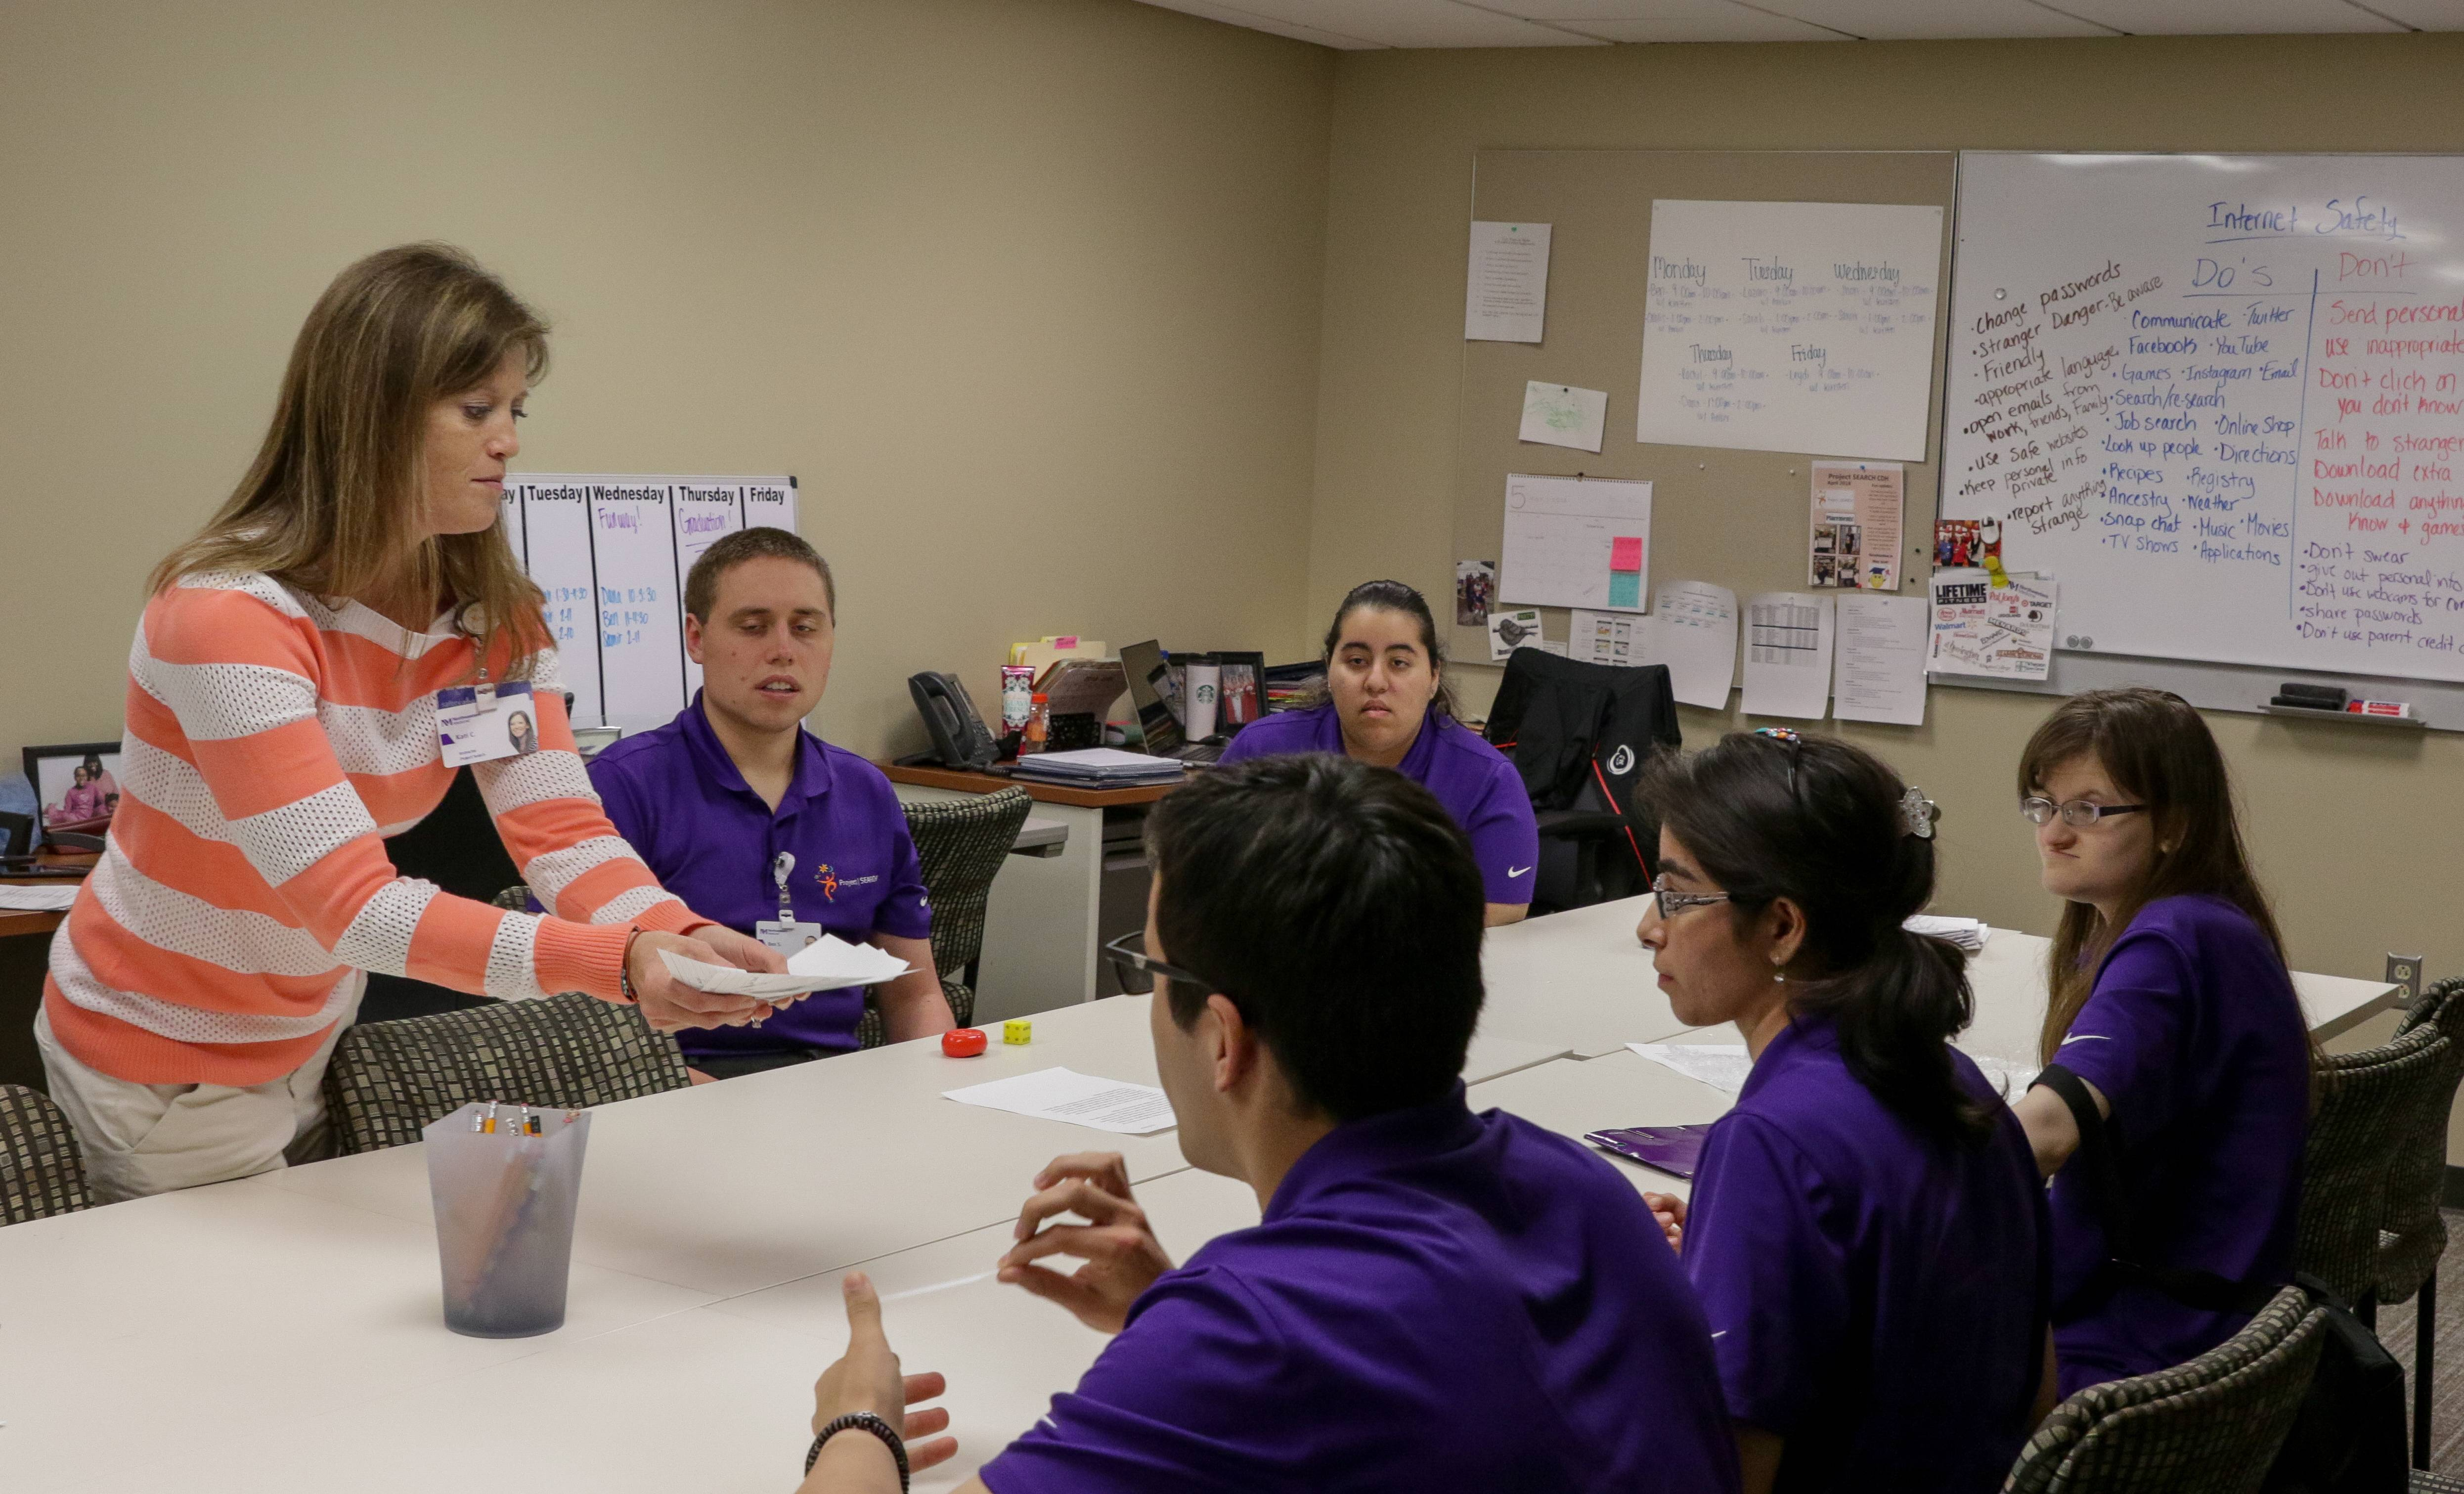 Kati Curby, a special education instructor, teaches Project SEARCH interns a lesson about internet safety in a classroom at Central DuPage Hospital in Winfield.